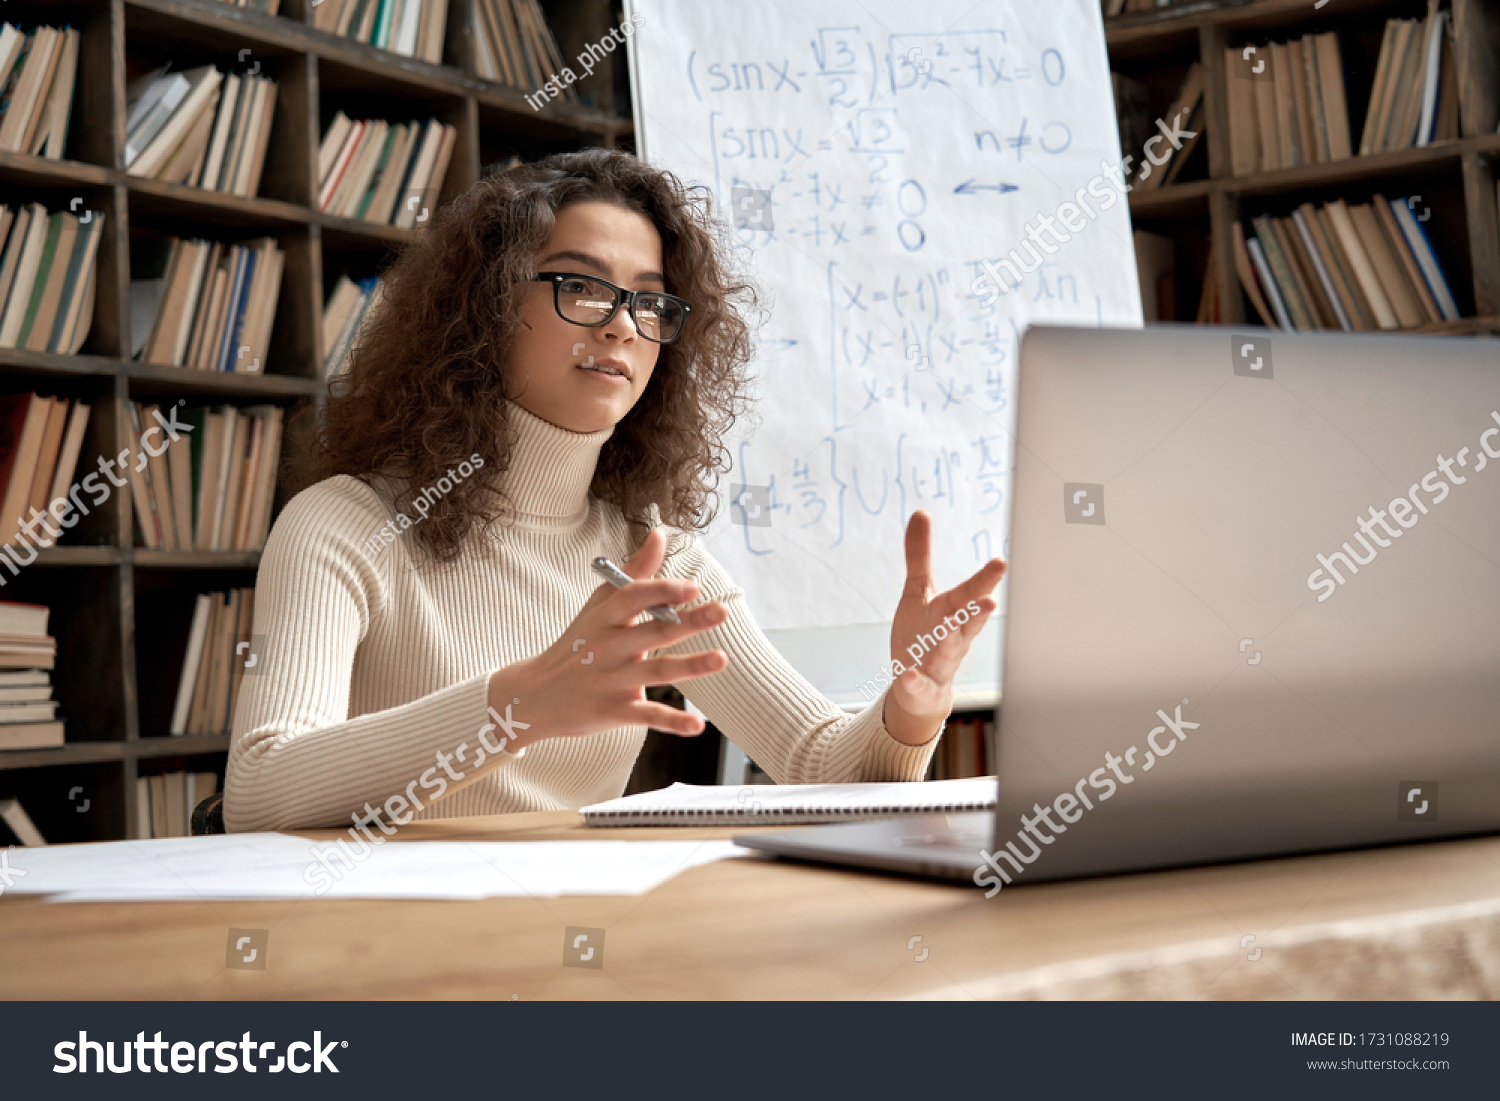 Female young hispanic school math teacher, college tutor coach looking at webcam and talking in classroom giving virtual teaching remote class online lesson by zoom conference call on laptop computer. #1731088219